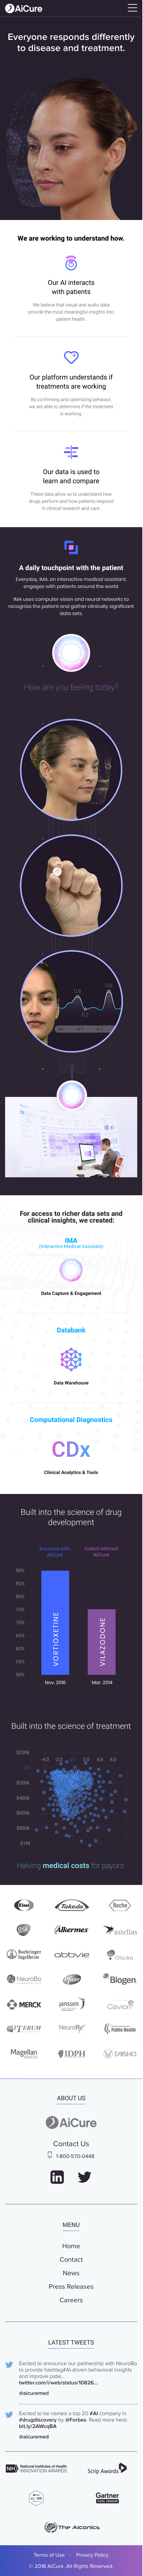 Example of Design for Health, Mobile Landing Page by aicure.com | Mobile Landing Page Design